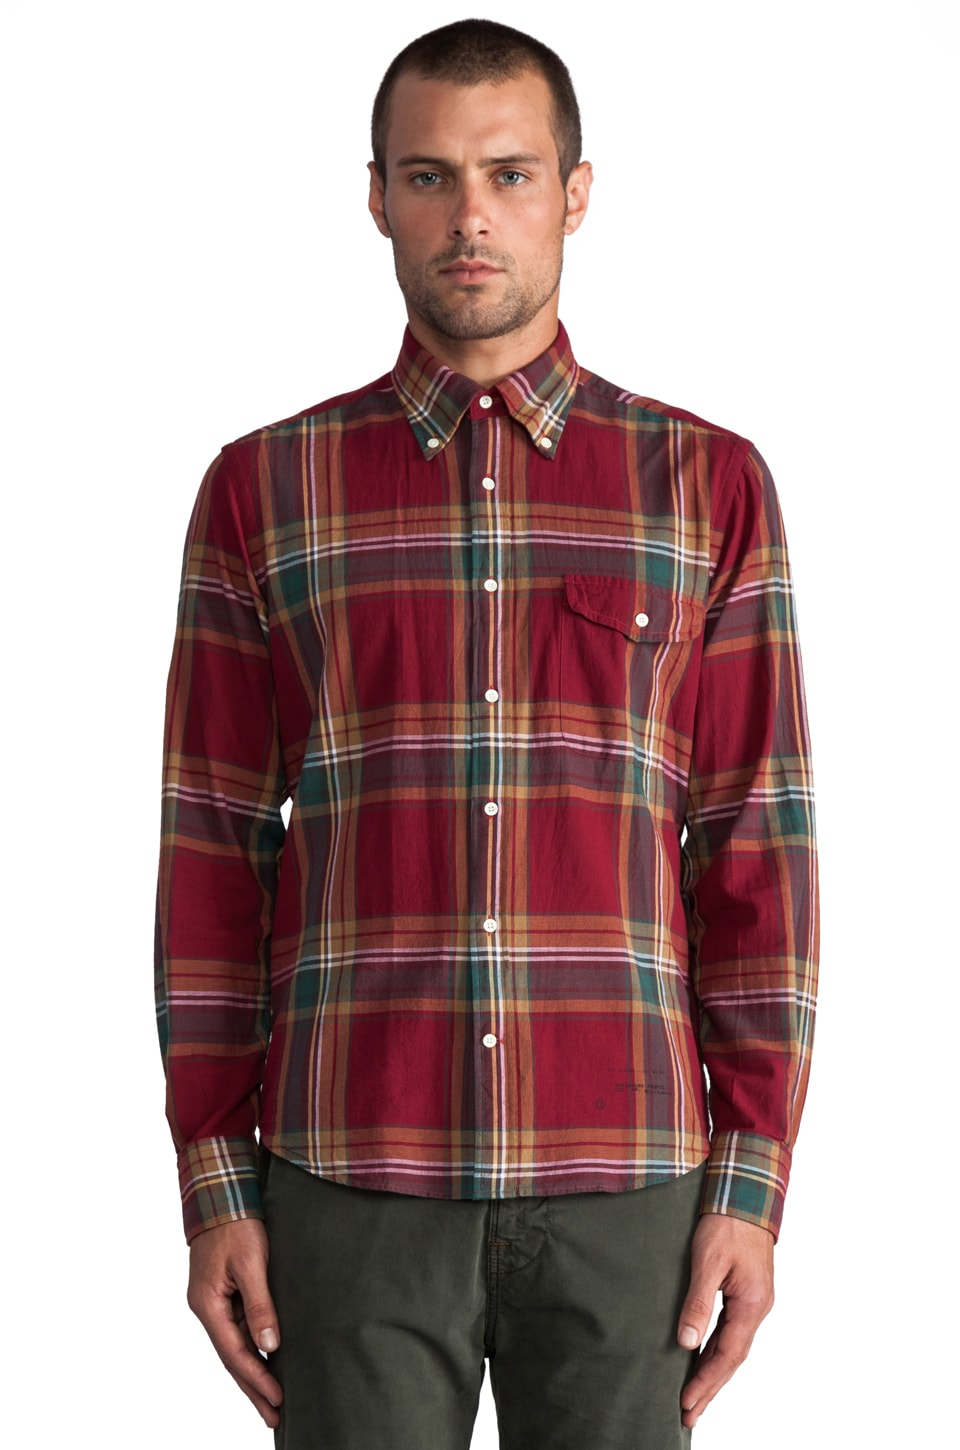 GANT Rugger Fall Madras E-Z Button Down in Burgundy Multi